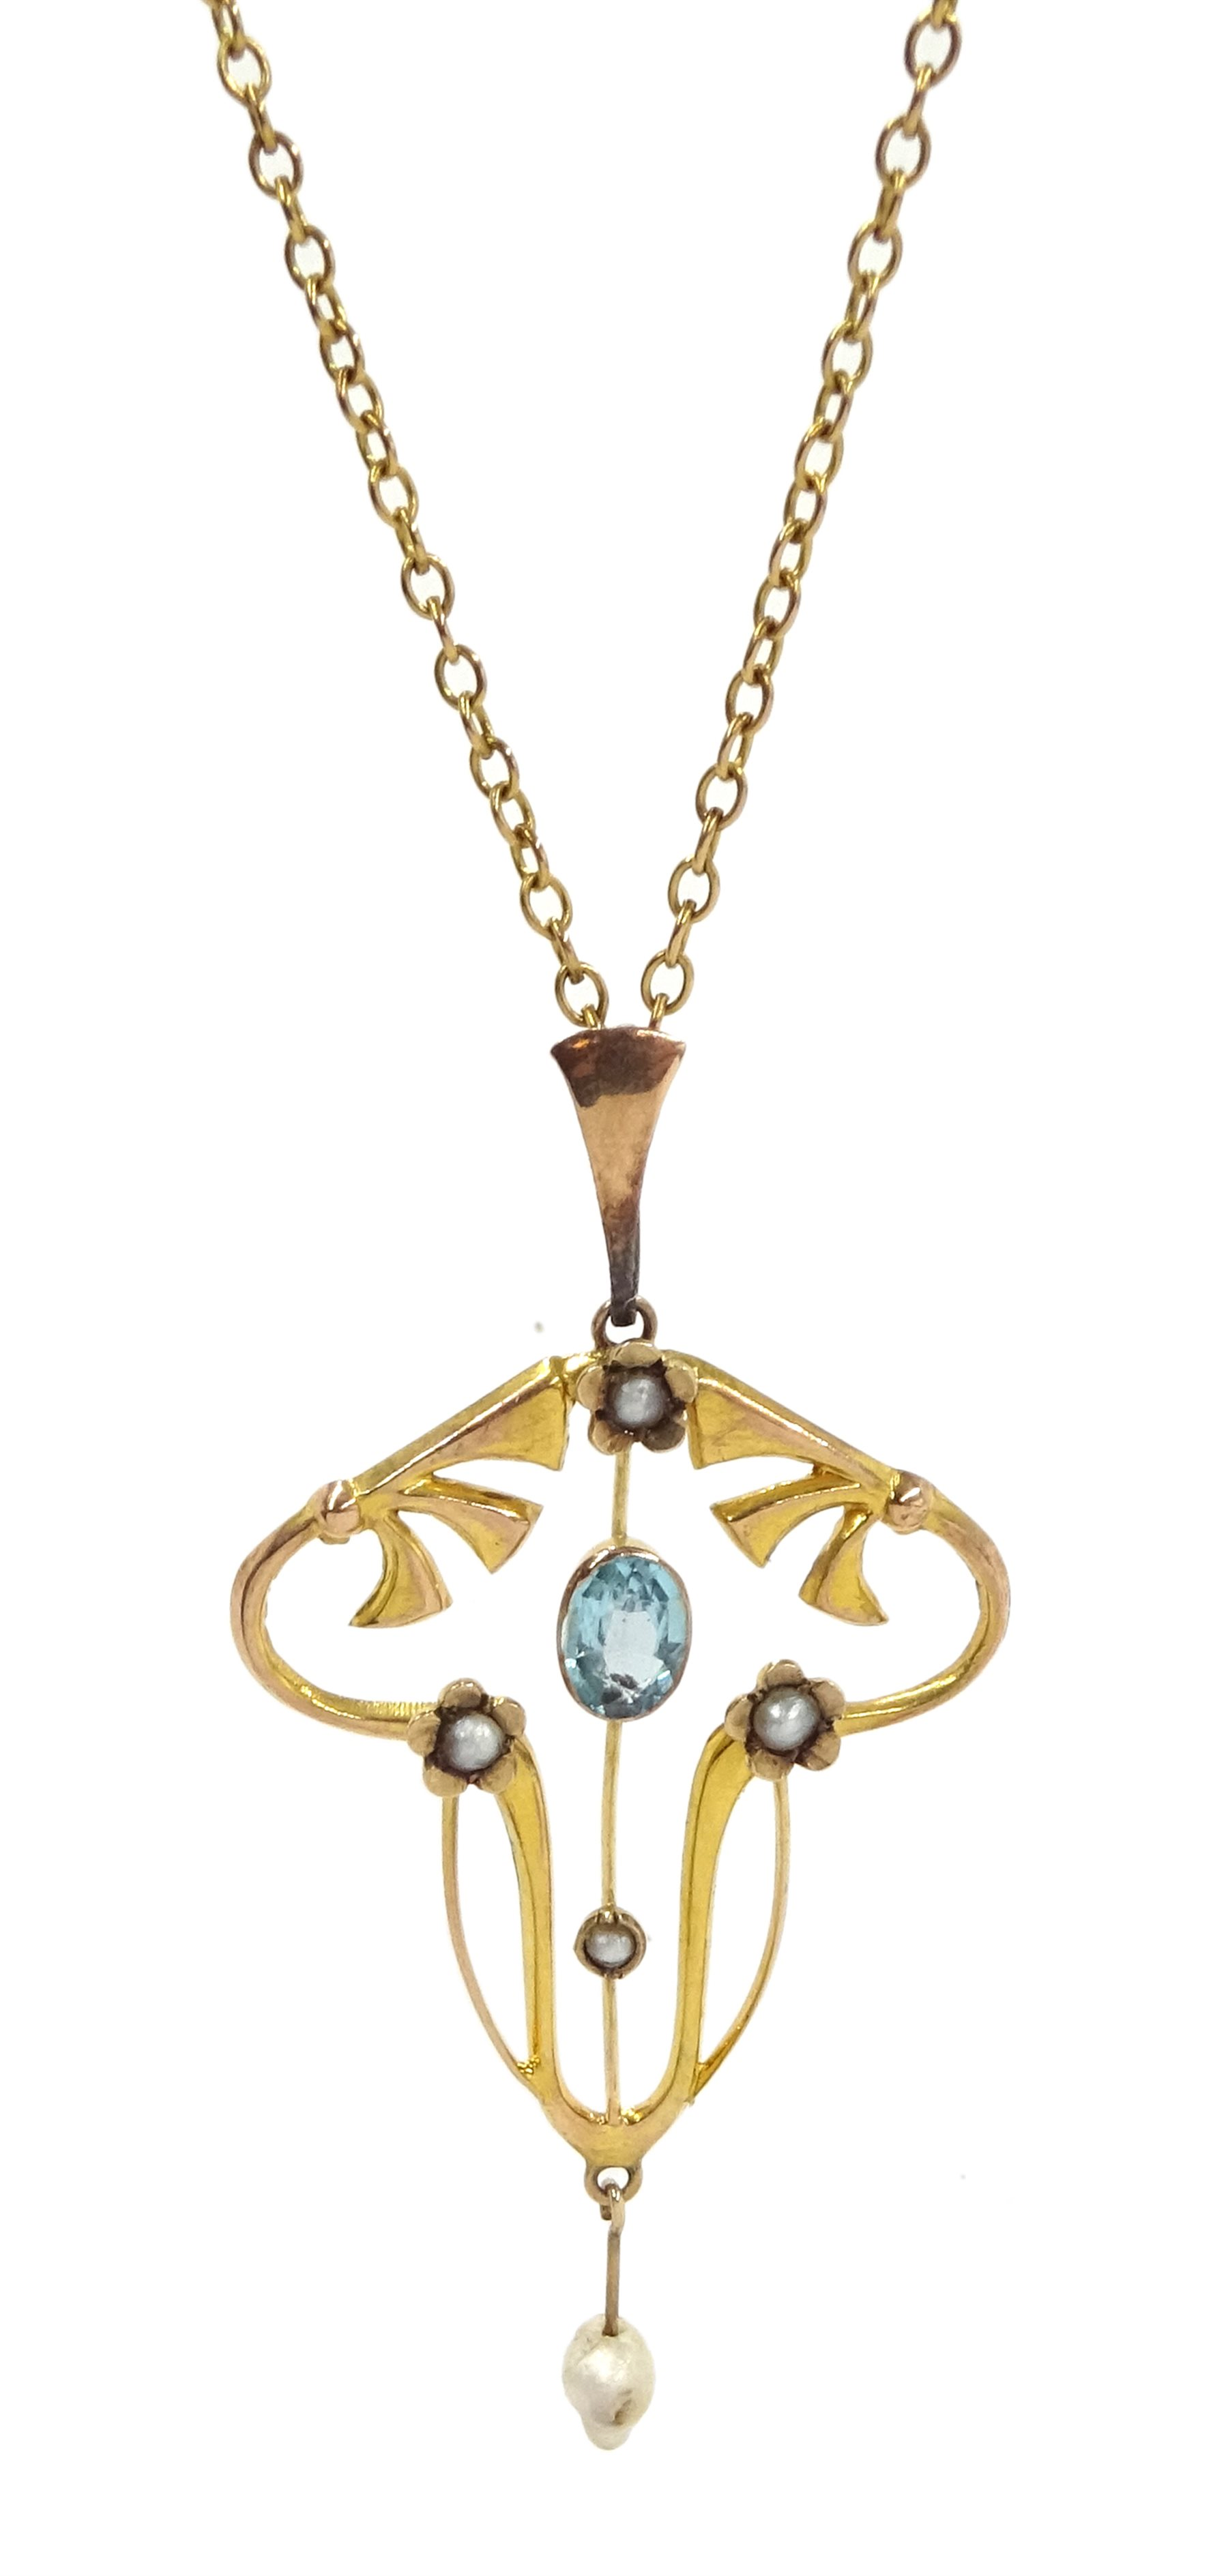 Edwardian 9ct gold blue topaz and seed pearl pendant, on 13ct gold chain necklace with clasp stamped